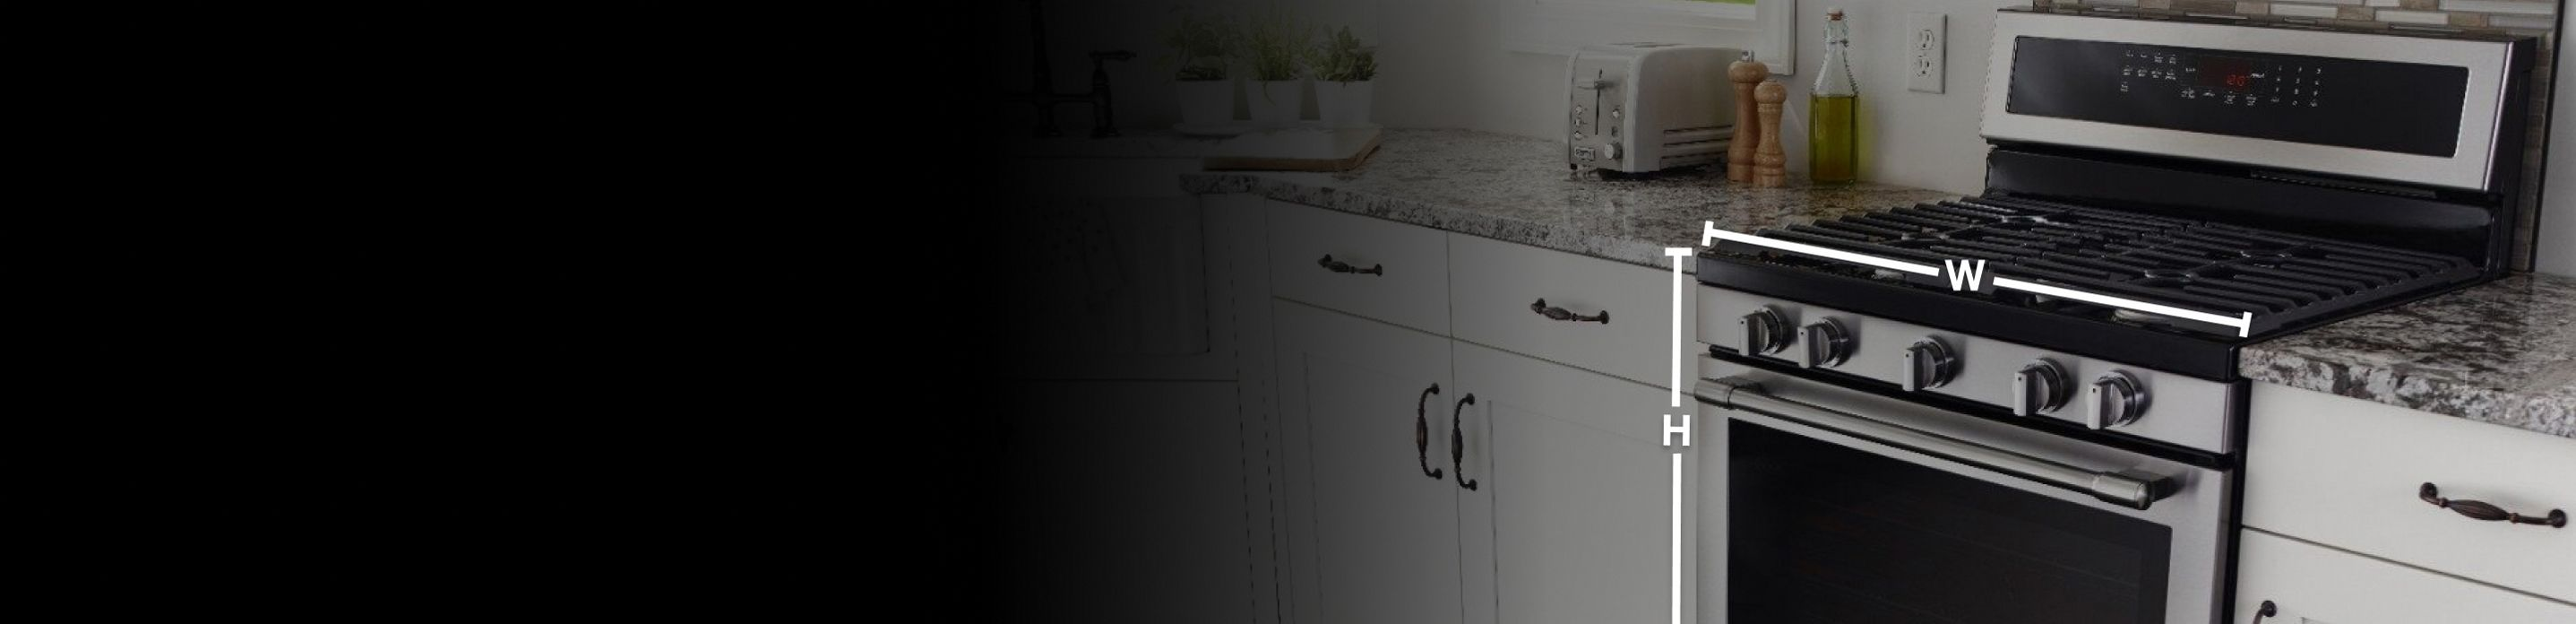 Width and height of a range in a kitchen